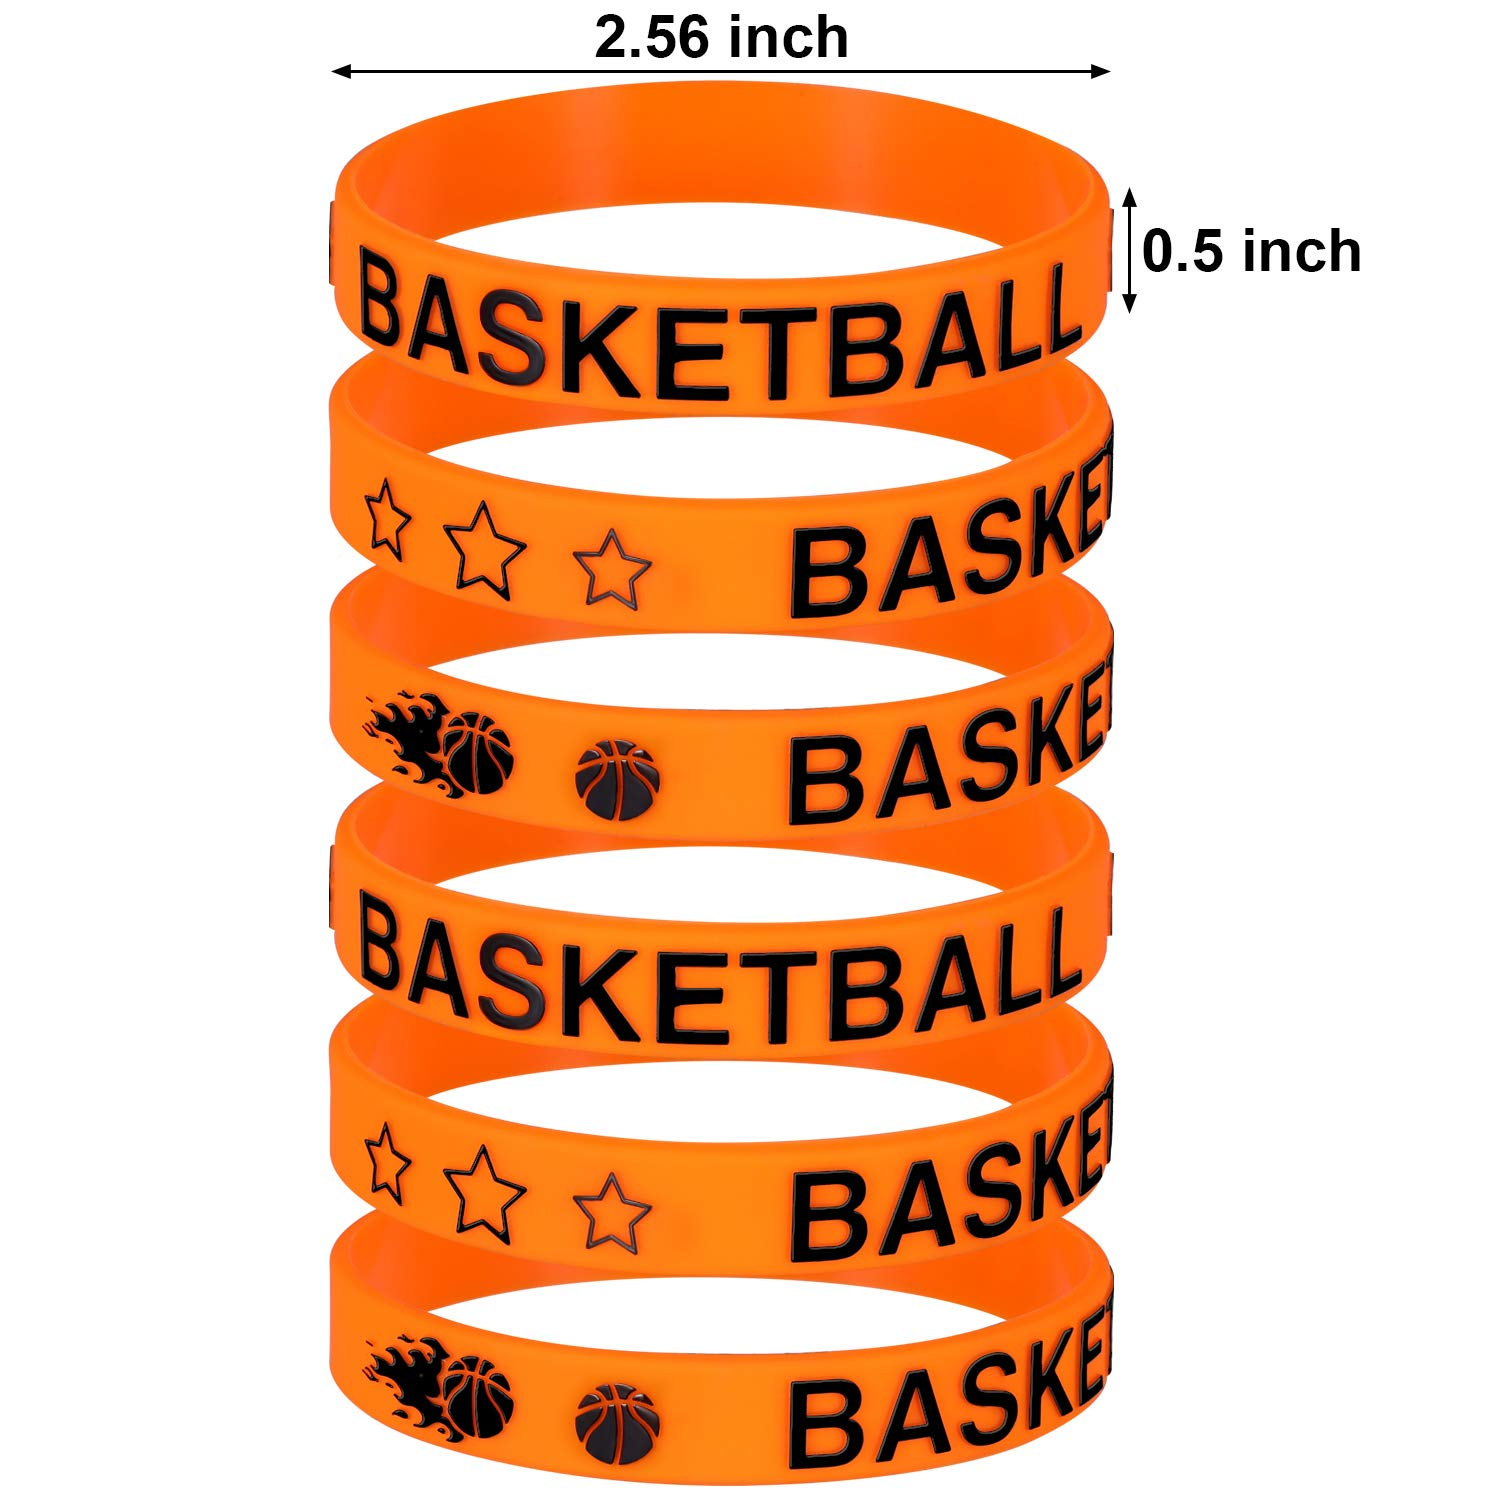 24 Pieces Norme 24 Pieces Basketball Silicone Bracelets Boy Rubber Wristbands Basketball Bracelet Party Favors for School Gifts Supplies